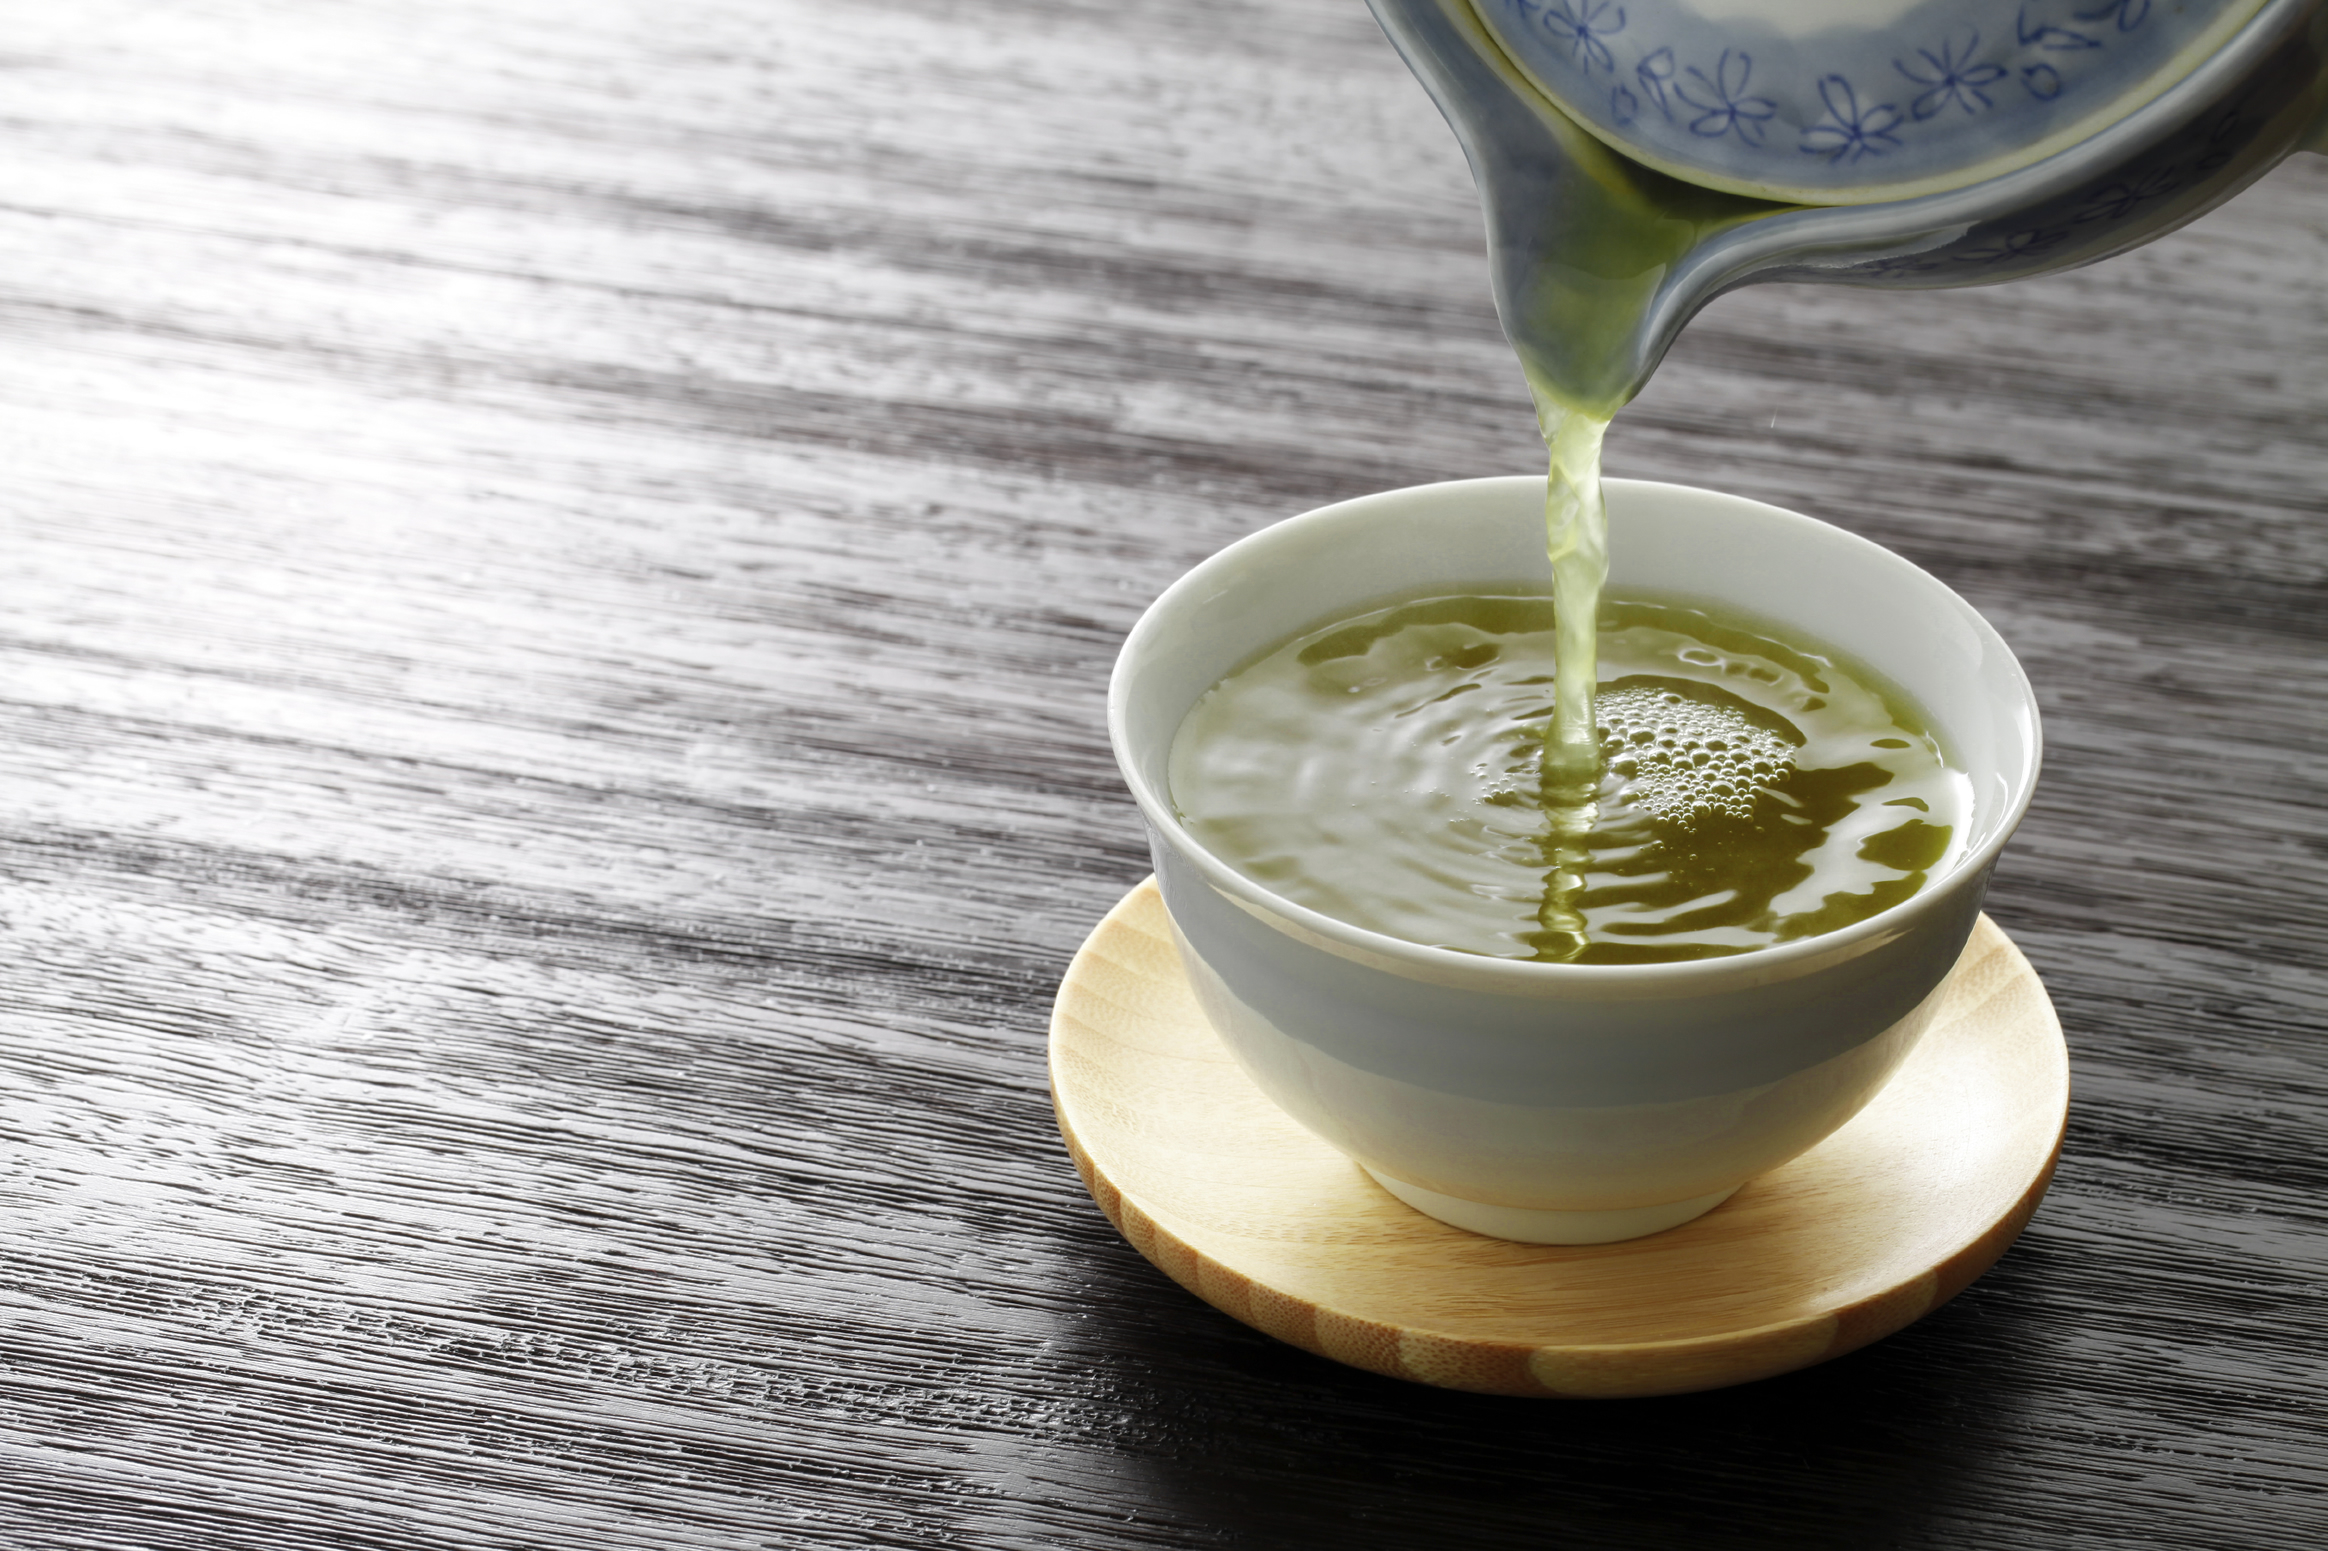 Kettle Pouring Green Tea